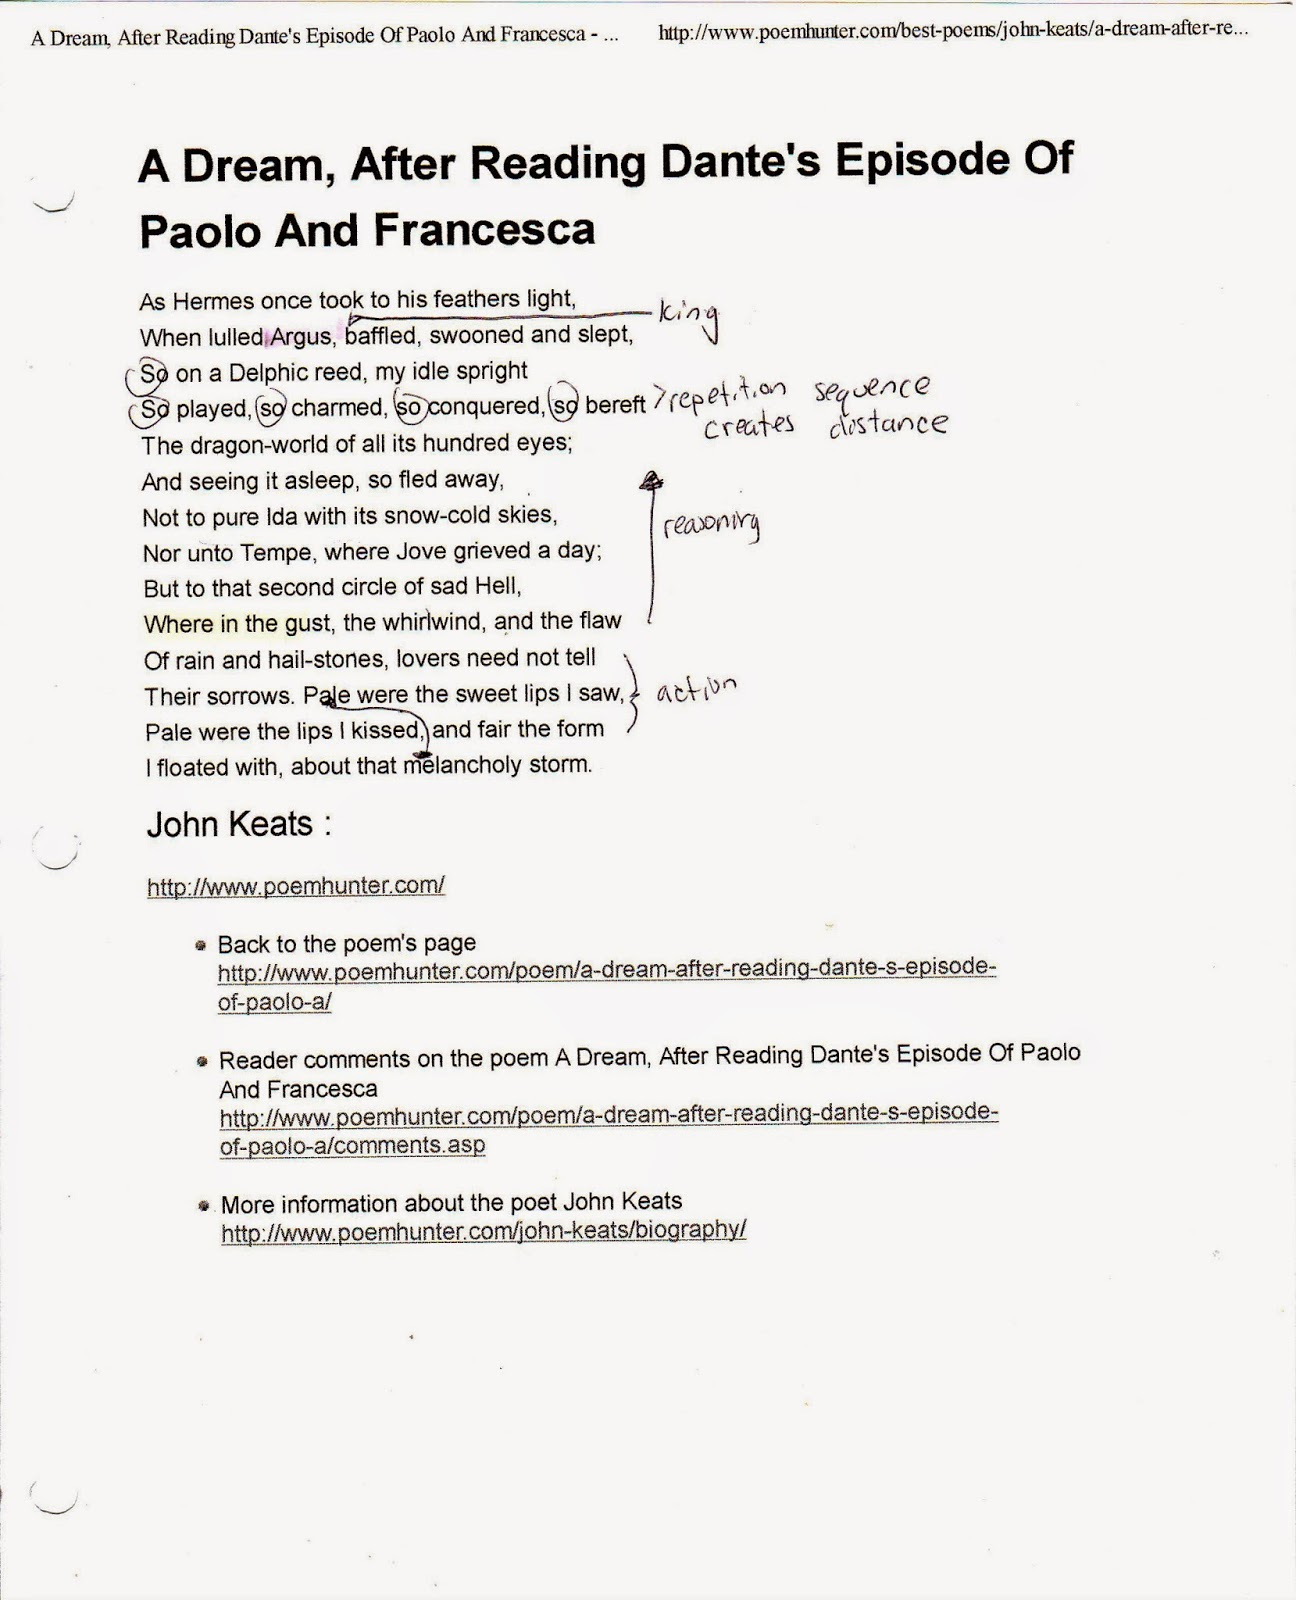 Essays Topics For High School Students Original Poem Reprinted Online Here A Dream After Reading Dantes  Episode Of Paolo And Francesca By John Keats More Information About The  Poet John  Professional College Admission Writers also Examples Of Argumentative Thesis Statements For Essays A Retail Life After The Mfa  Analysis Of A Dream After Reading  Good English Essays Examples